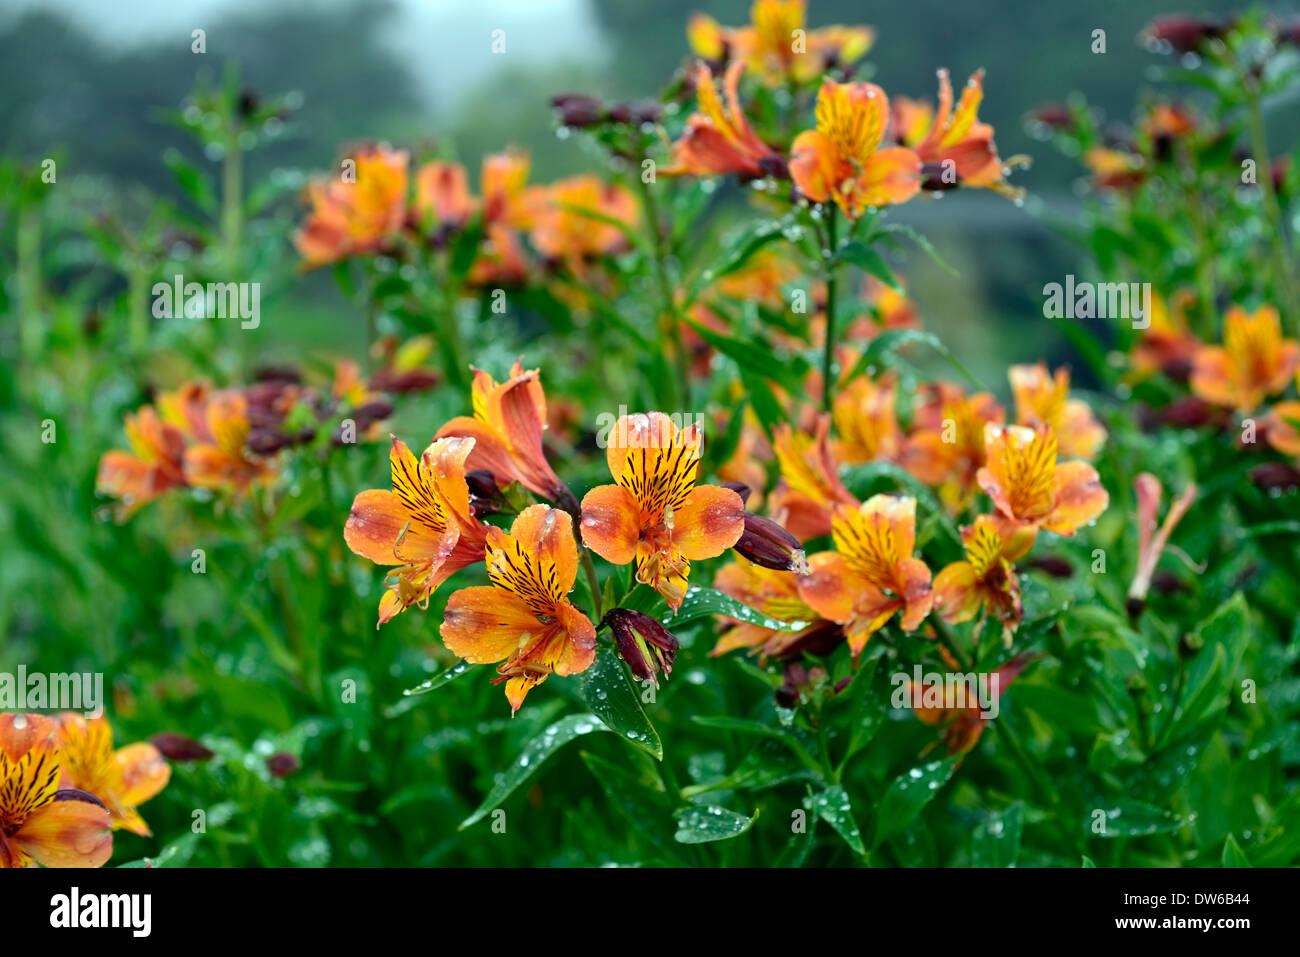 Alstroemeria Marmalade Peruvian Lily Butterfly Lily Orange Flower